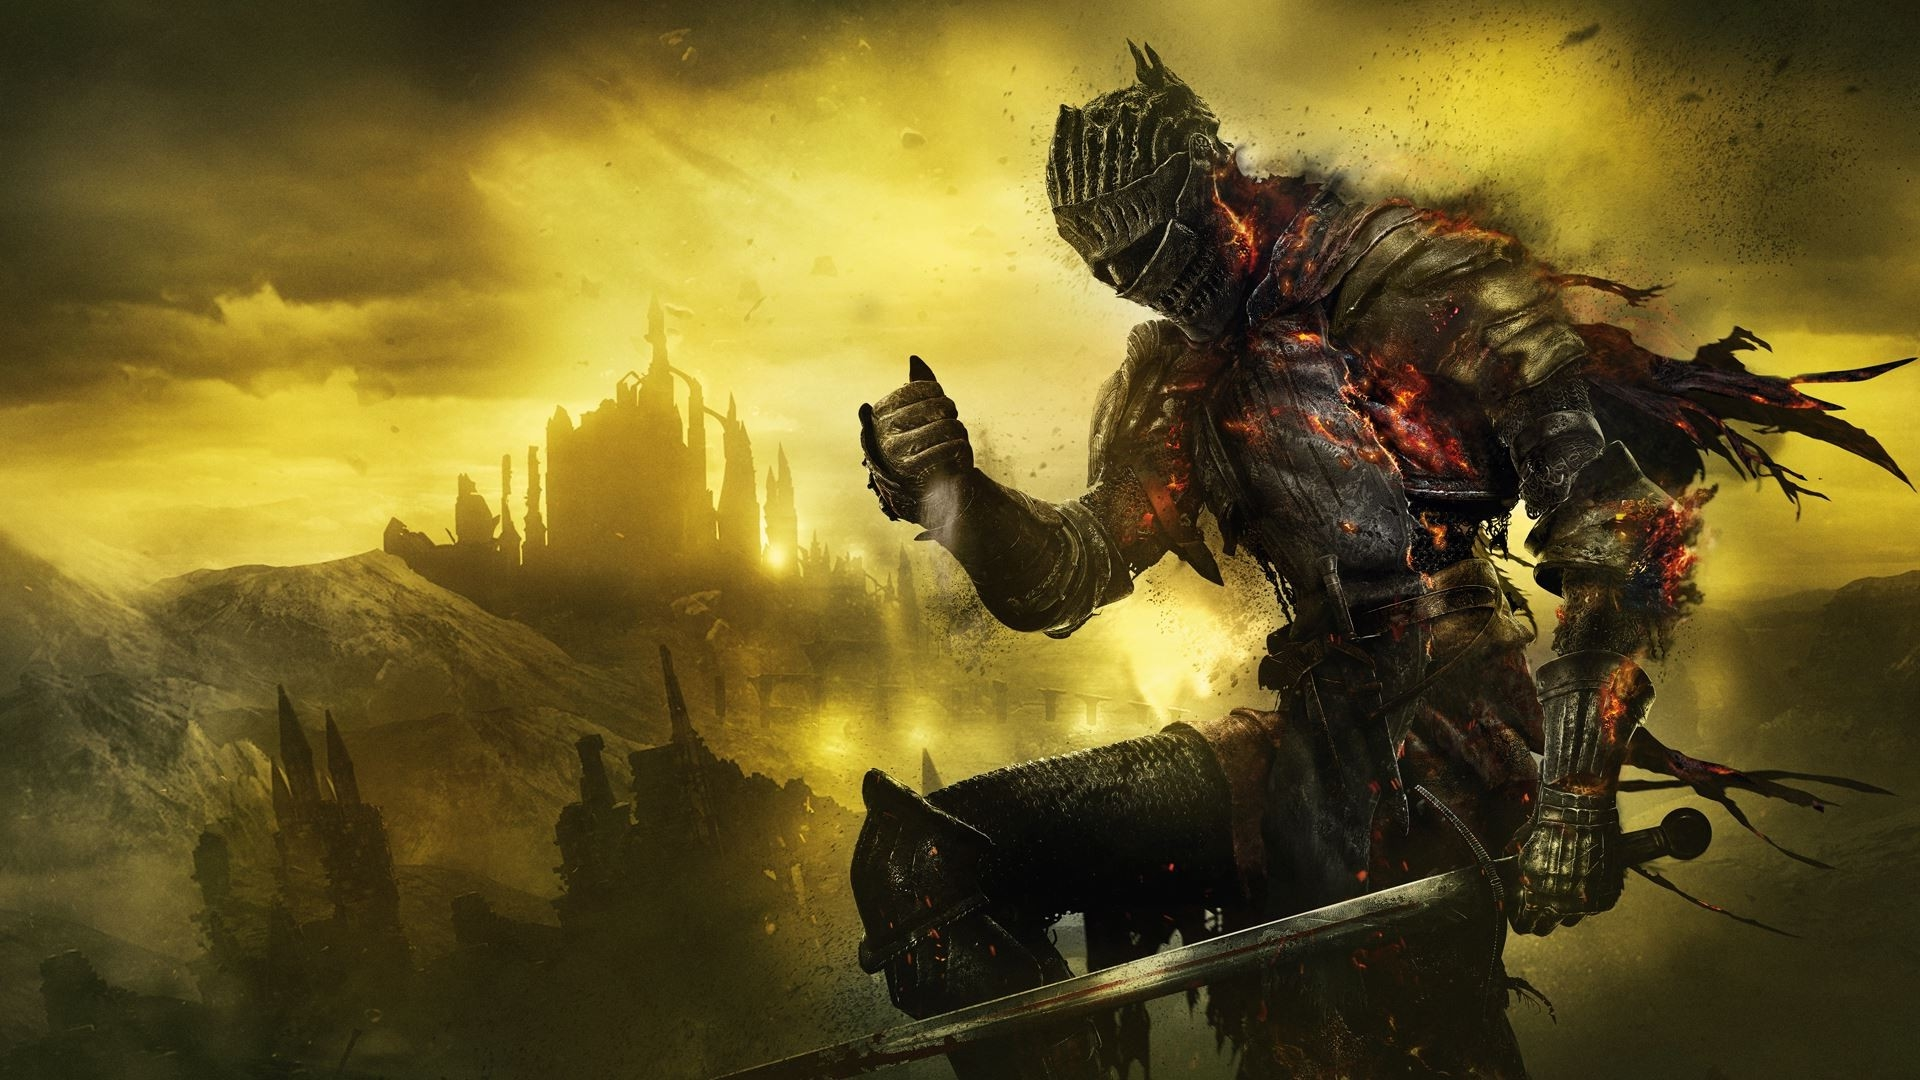 Wallpaper Dark Souls 3 06   Jeux JVL 1920x1080